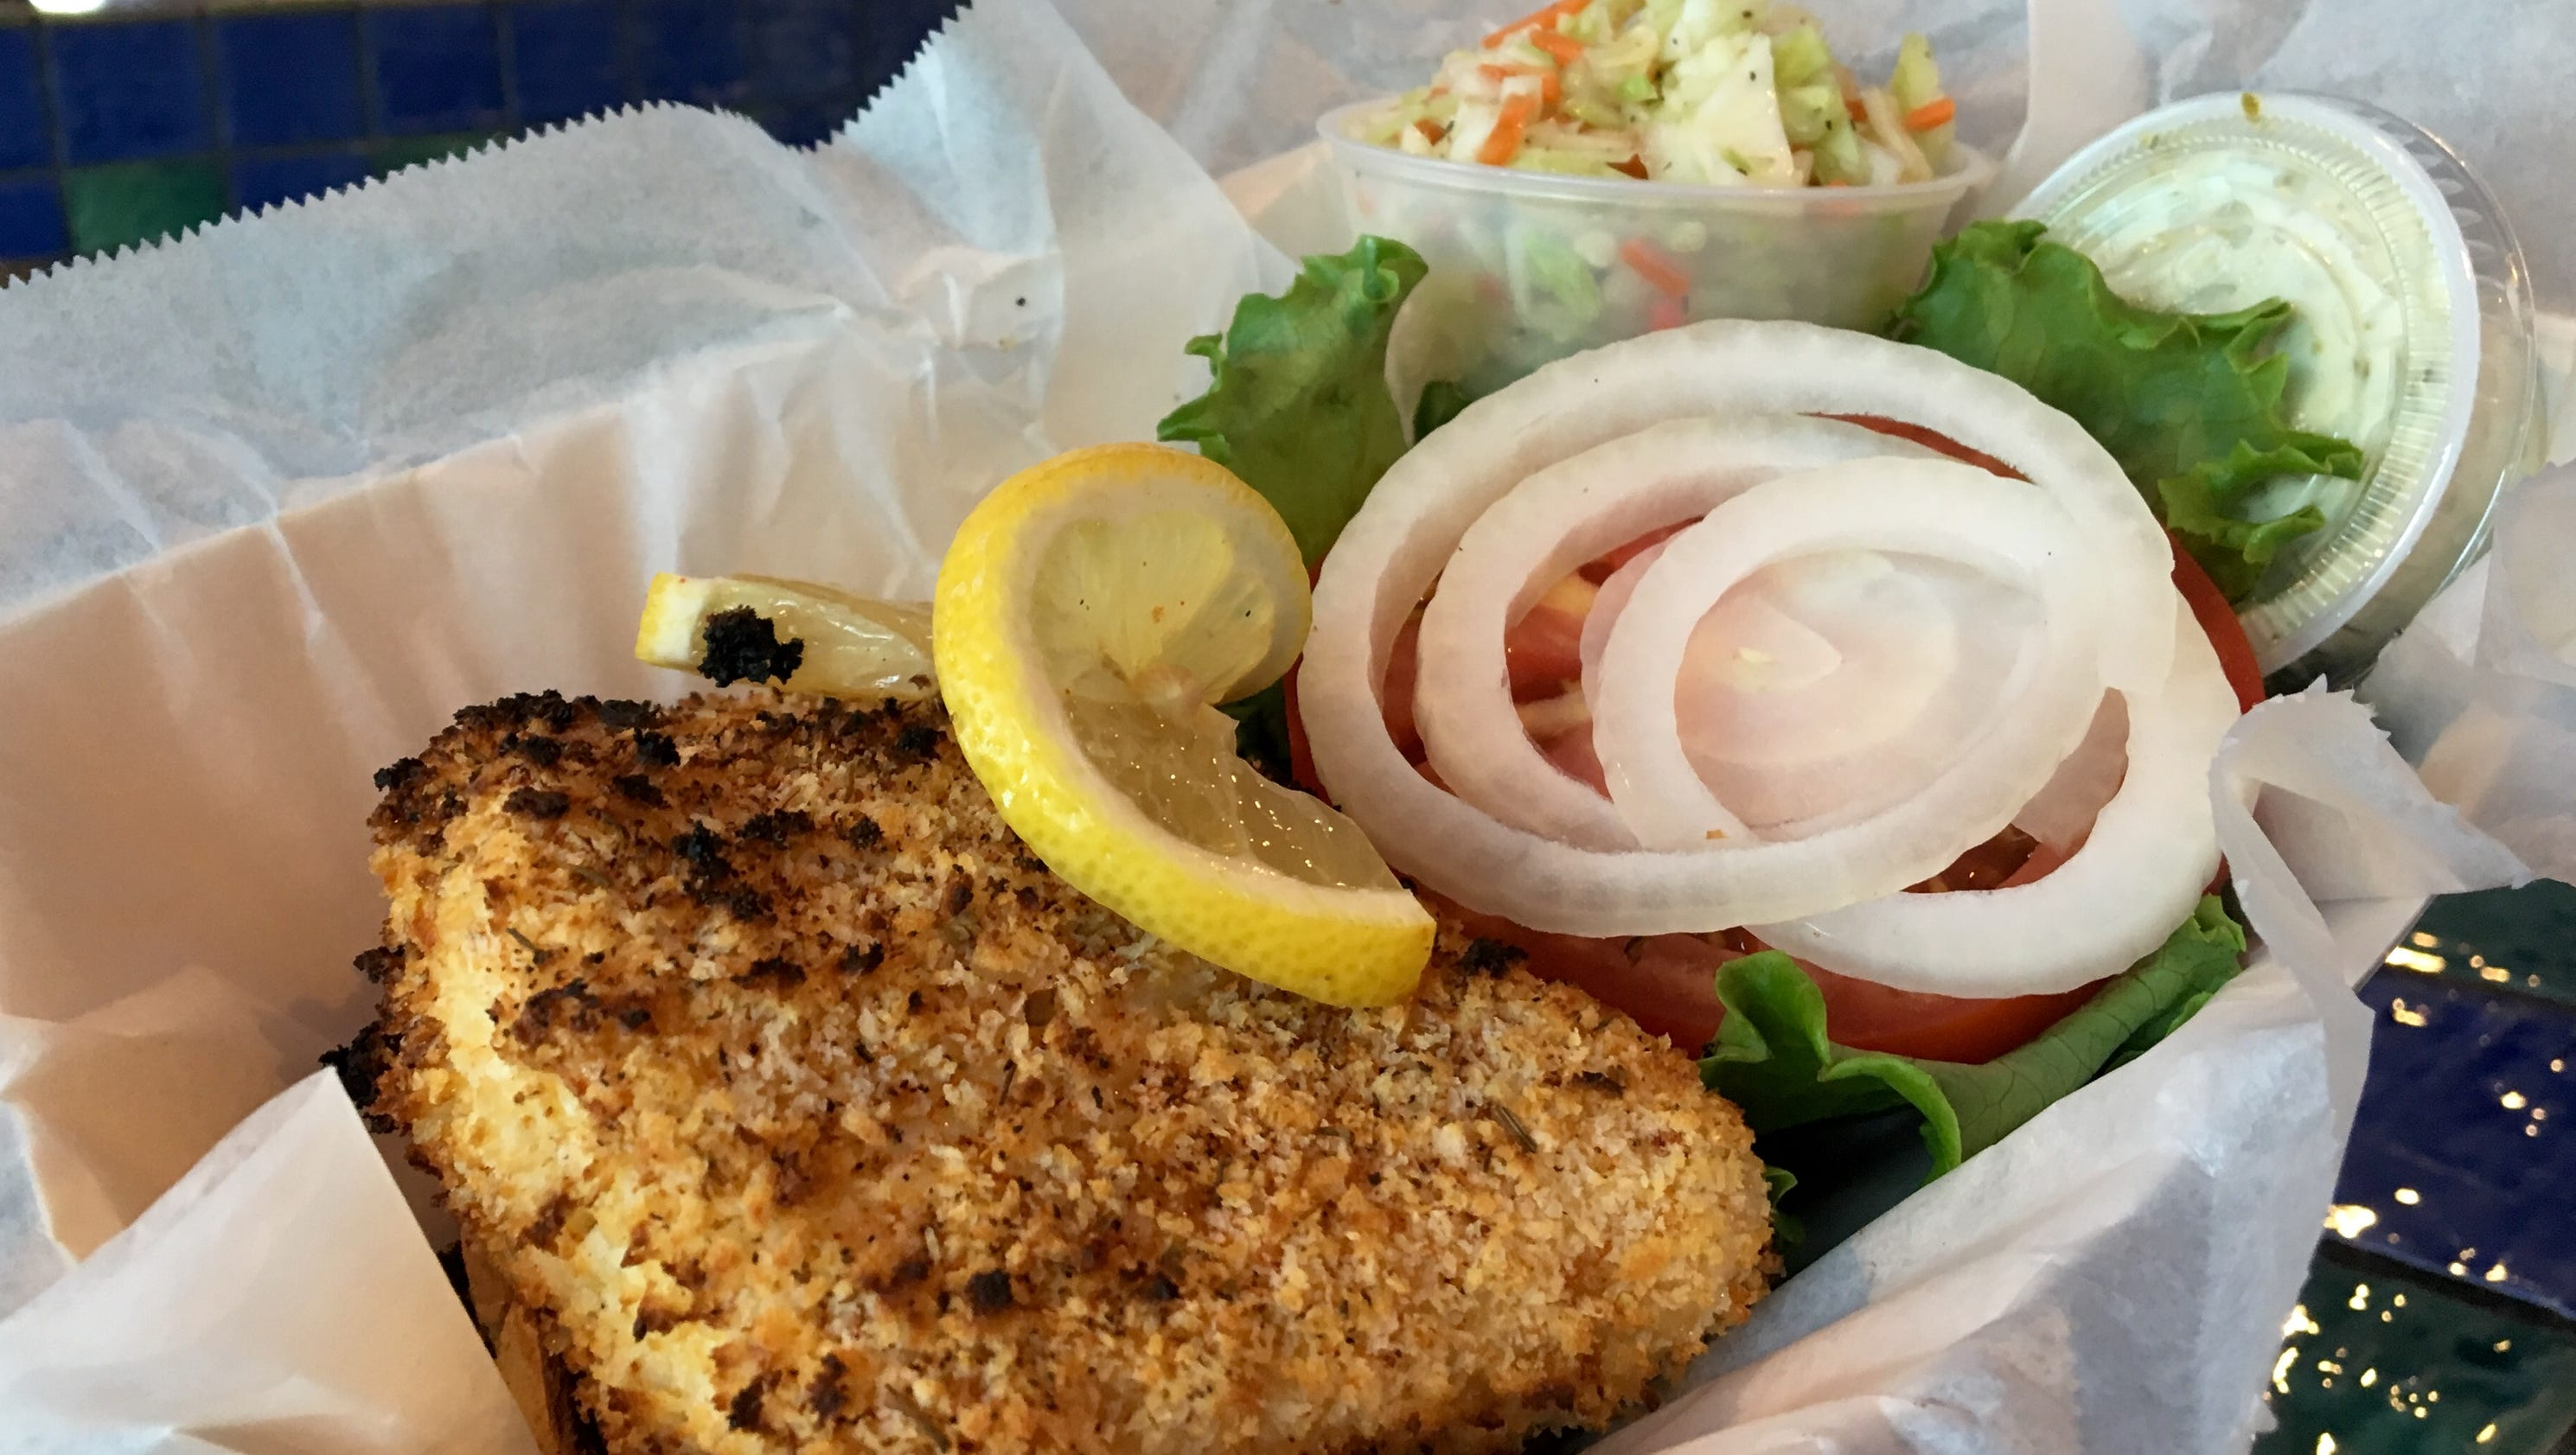 Hot dish at island seafood a sandwich that 39 s matlacha fresh for City fish market fort myers